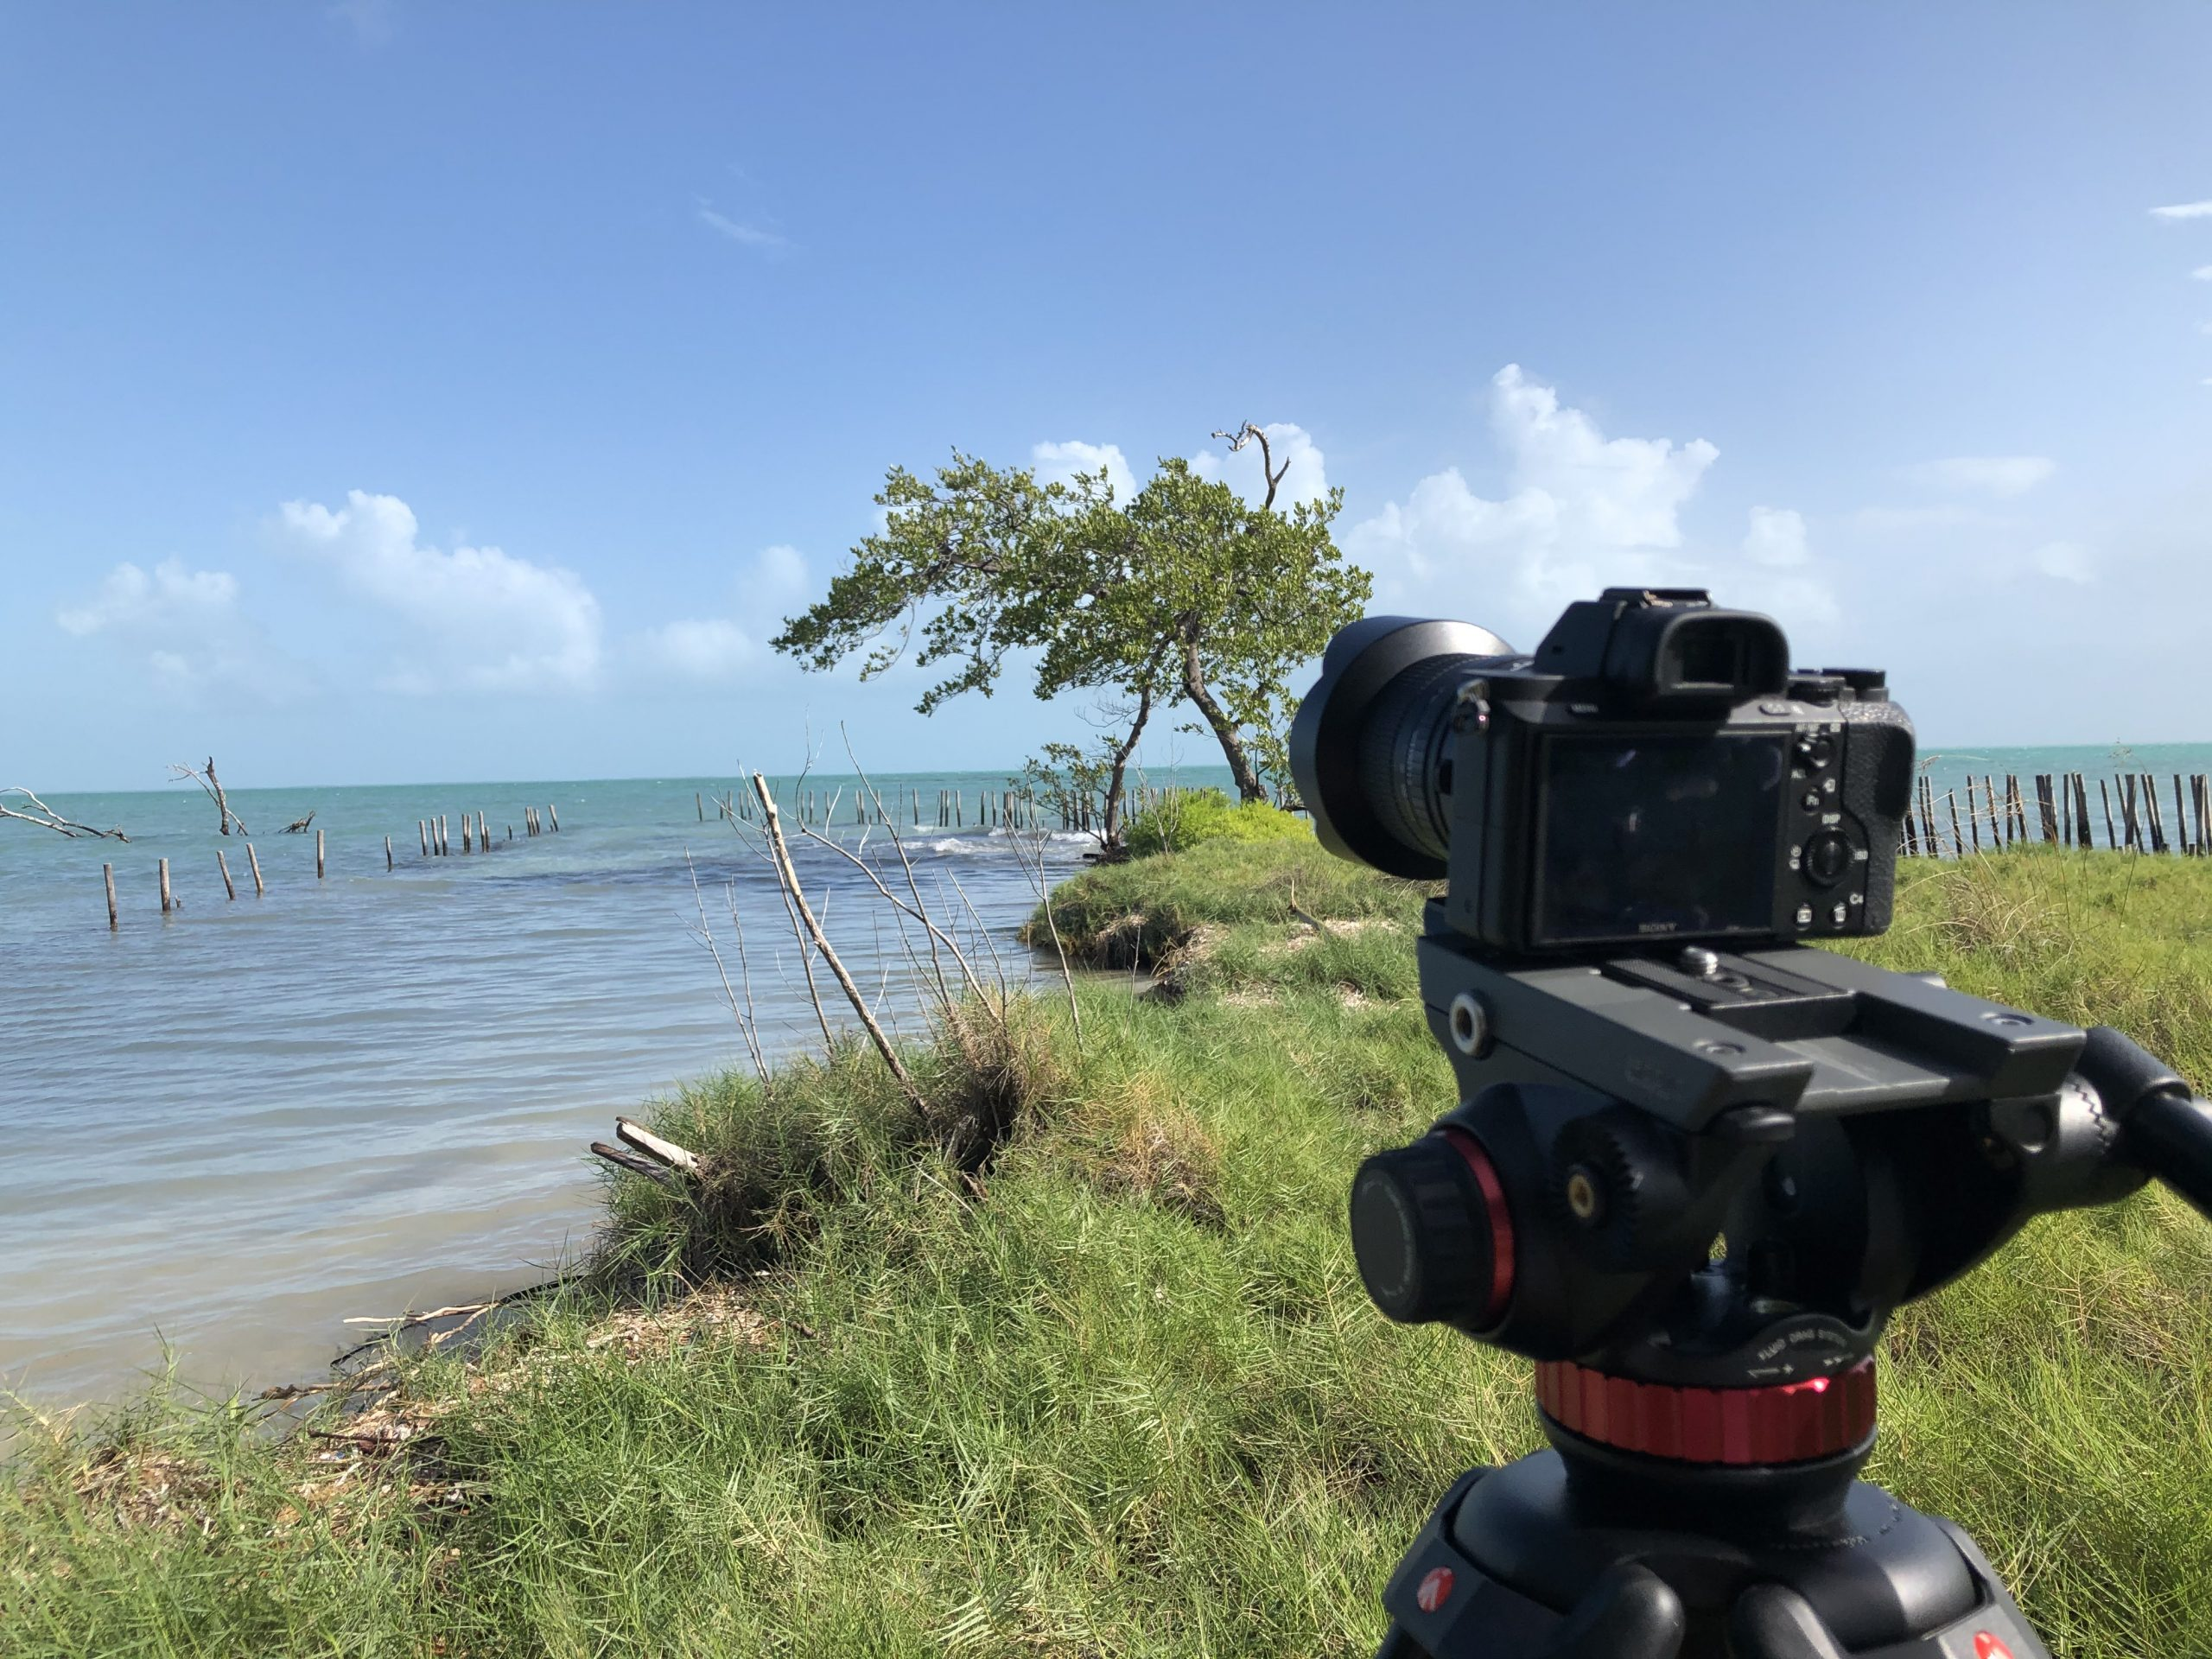 Filming on a Private Island